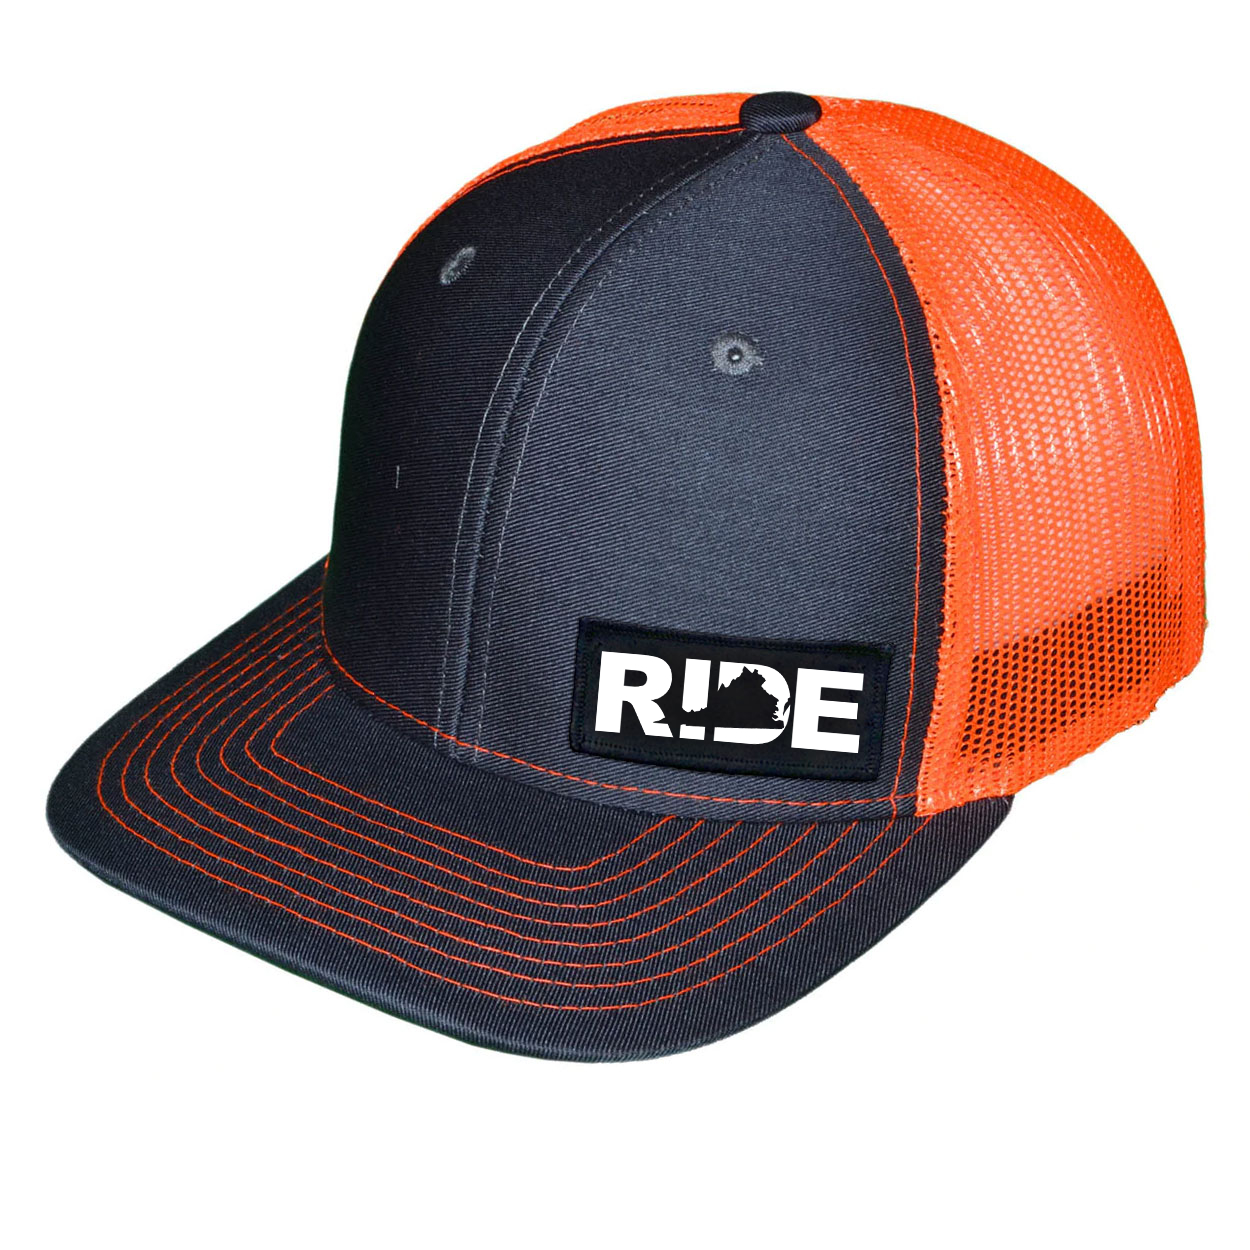 Ride Virginia Night Out Woven Patch Snapback Trucker Hat Dark Gray/Orange (White Logo)